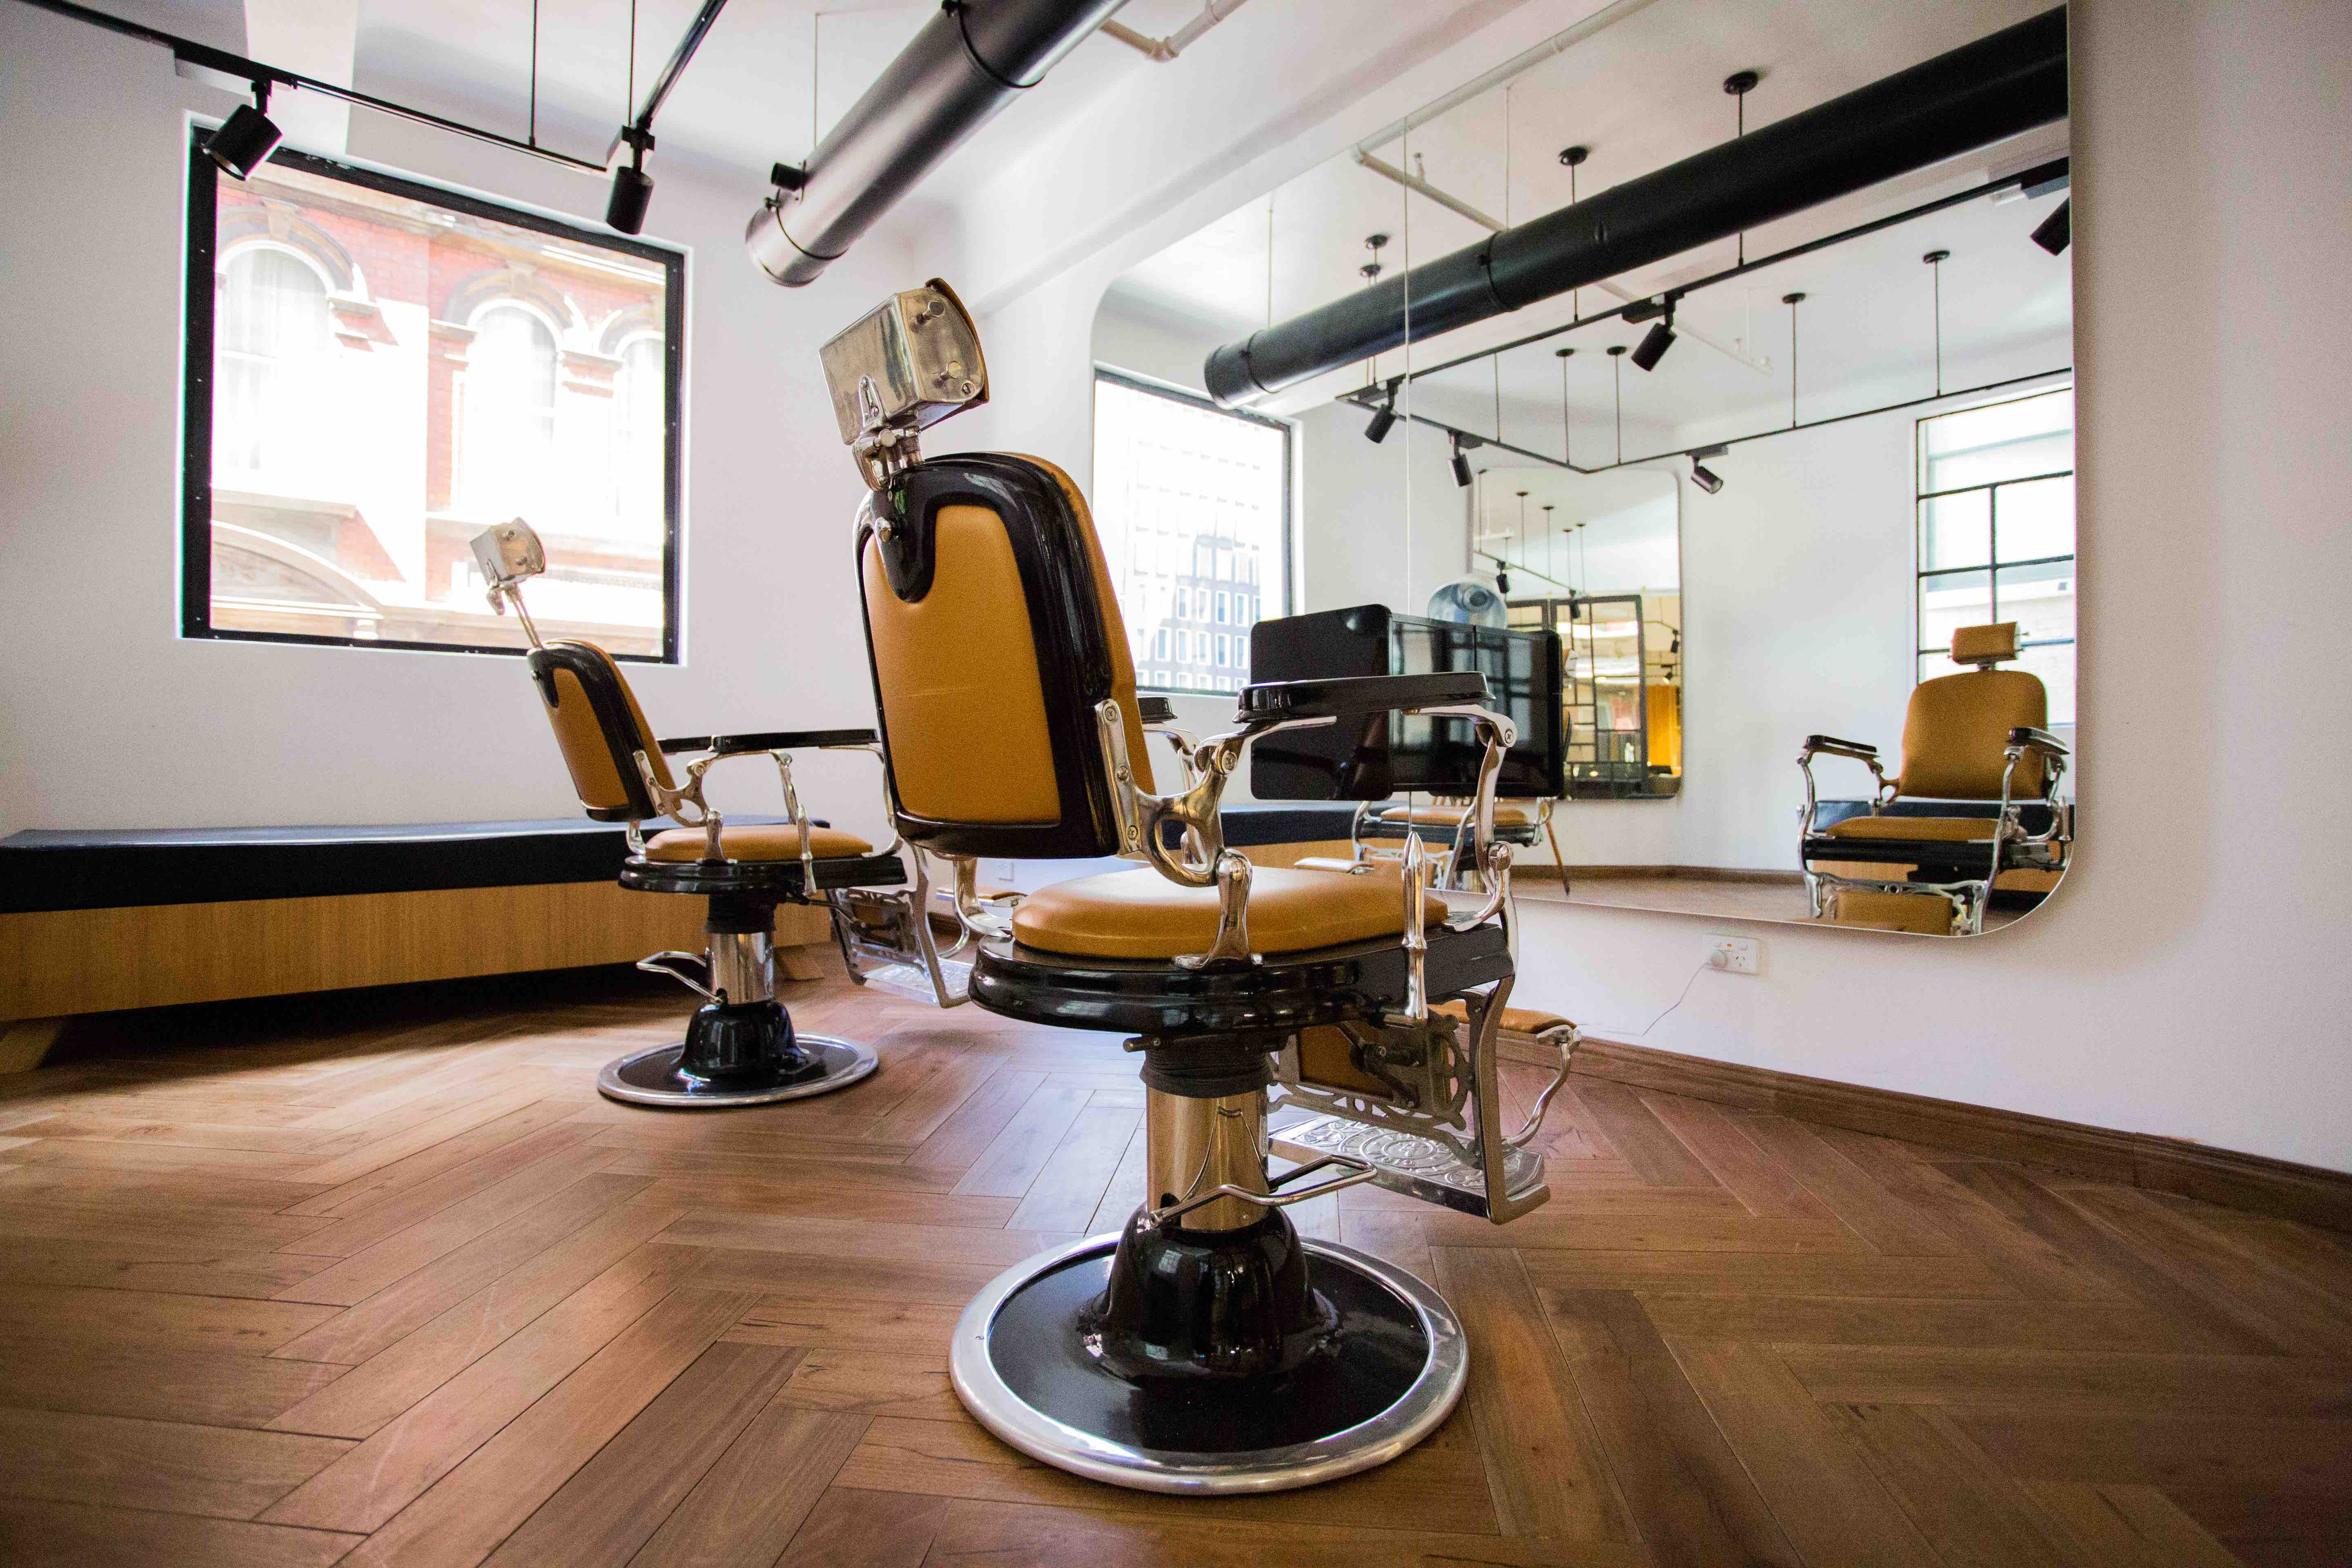 RENT A CHAIR HAIRDRESSING, multi-use area at House of TERRE A MER, image 9